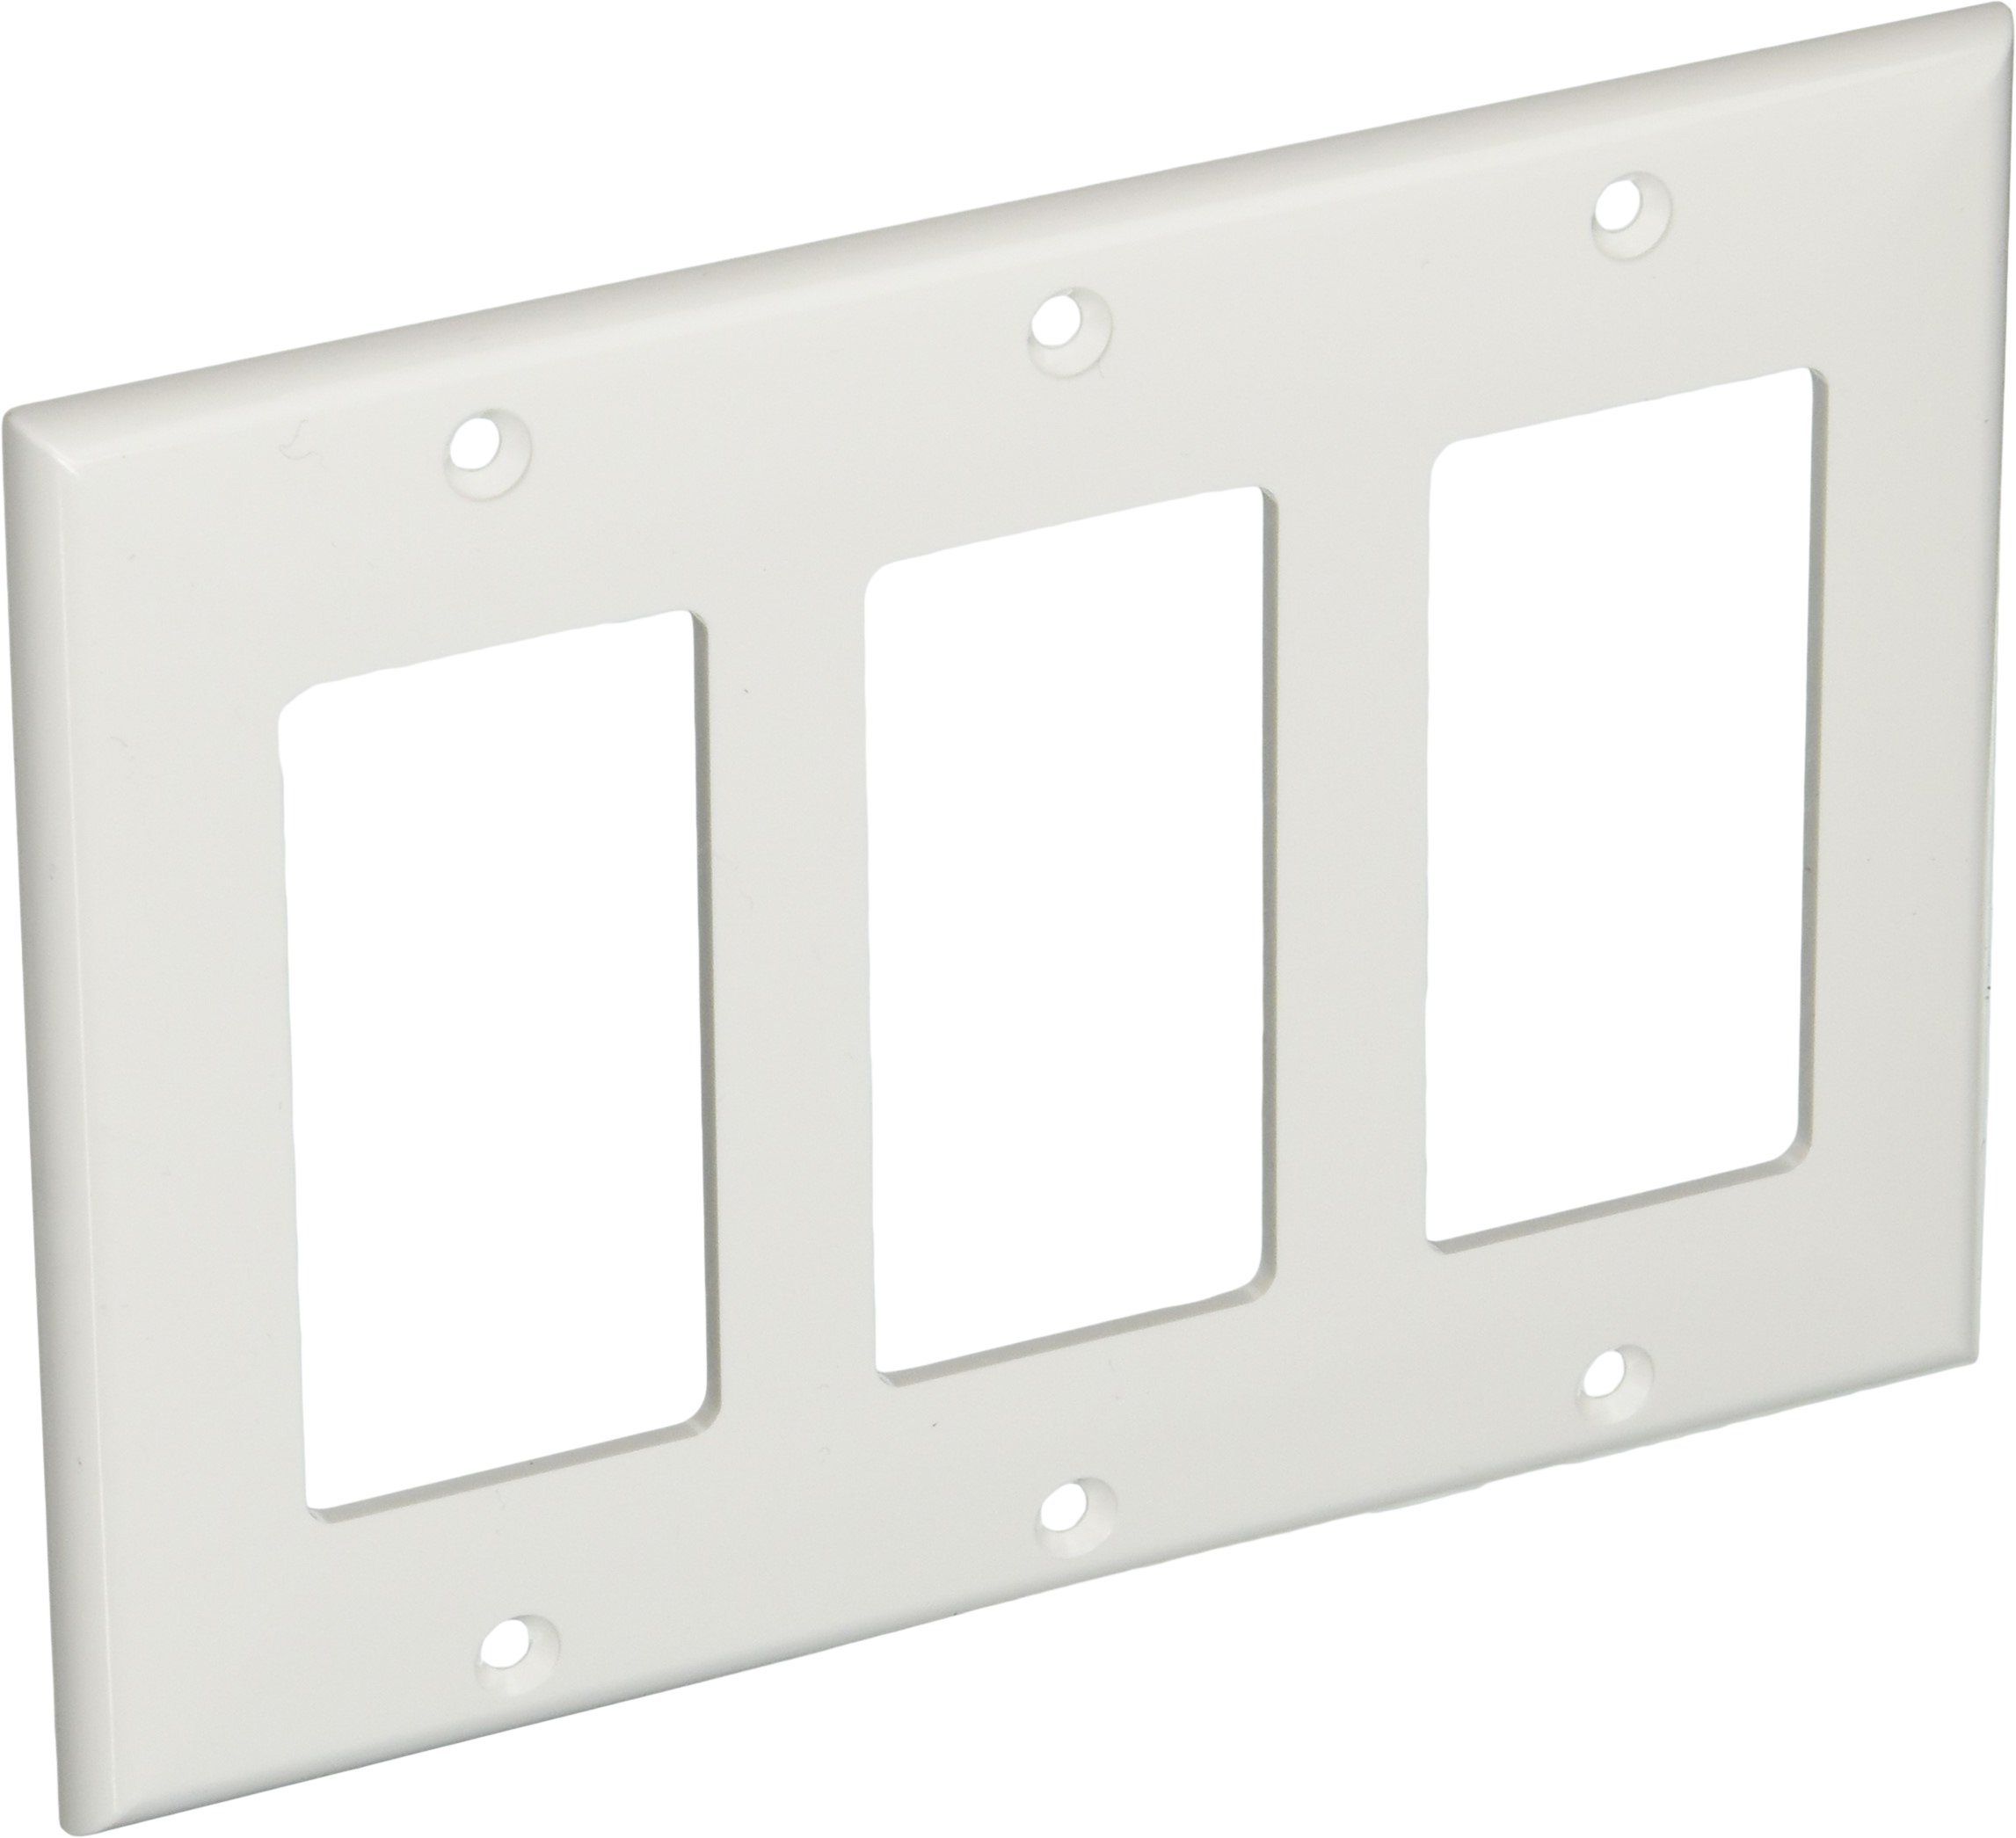 Morris 81131 Lexan Wall Plate, Decorative/GFCI, 3 Gang, White